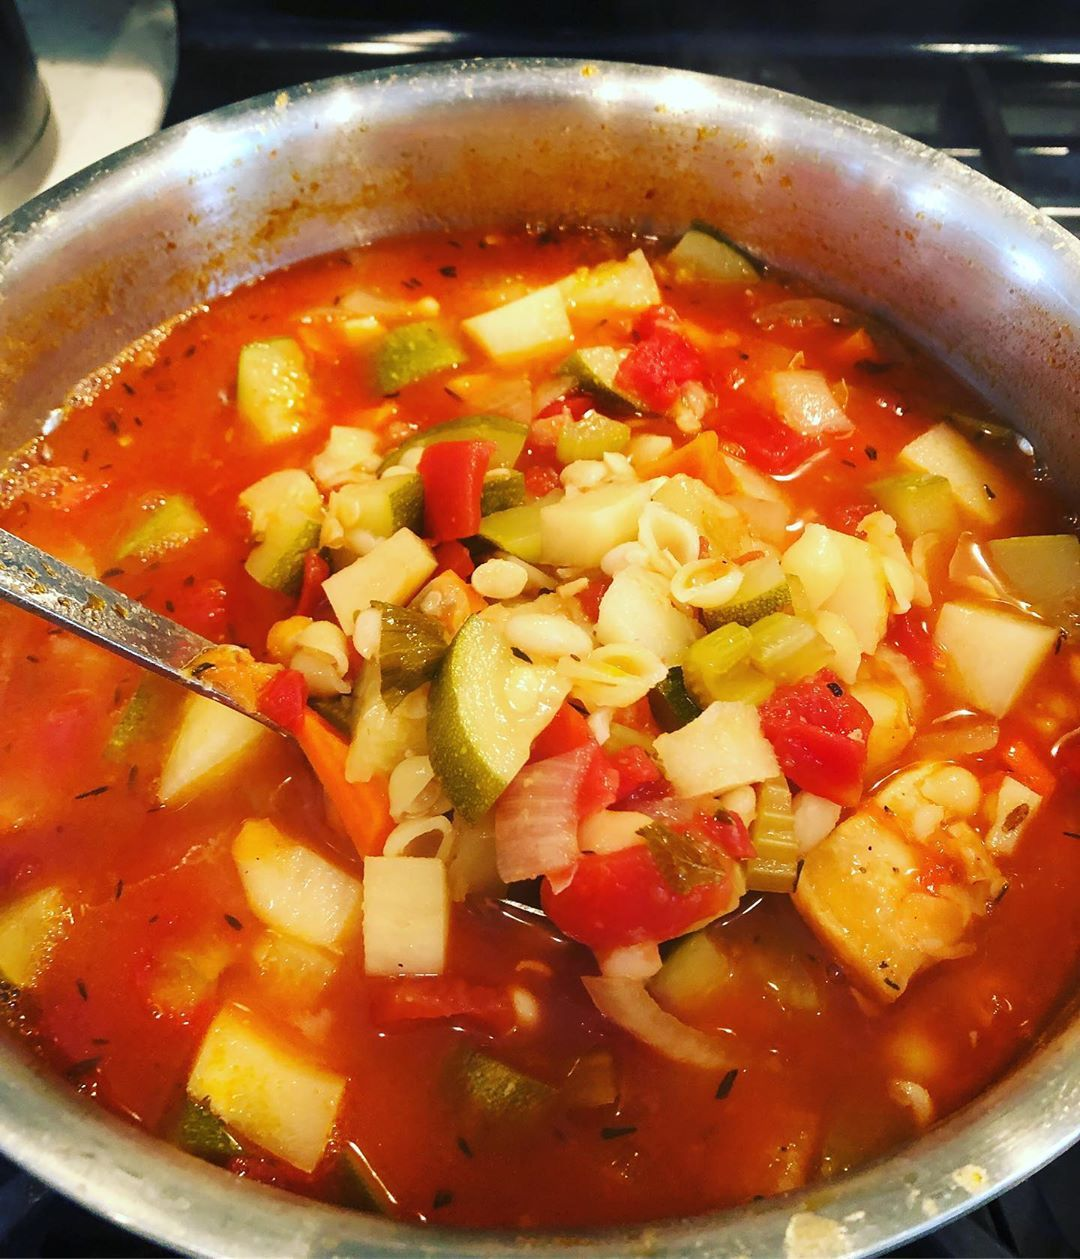 Soup always reminds me of Nonnie. Summer minestrone full of vegetables, beans and pasta with parm rinds and plenty of Italian olive oil.